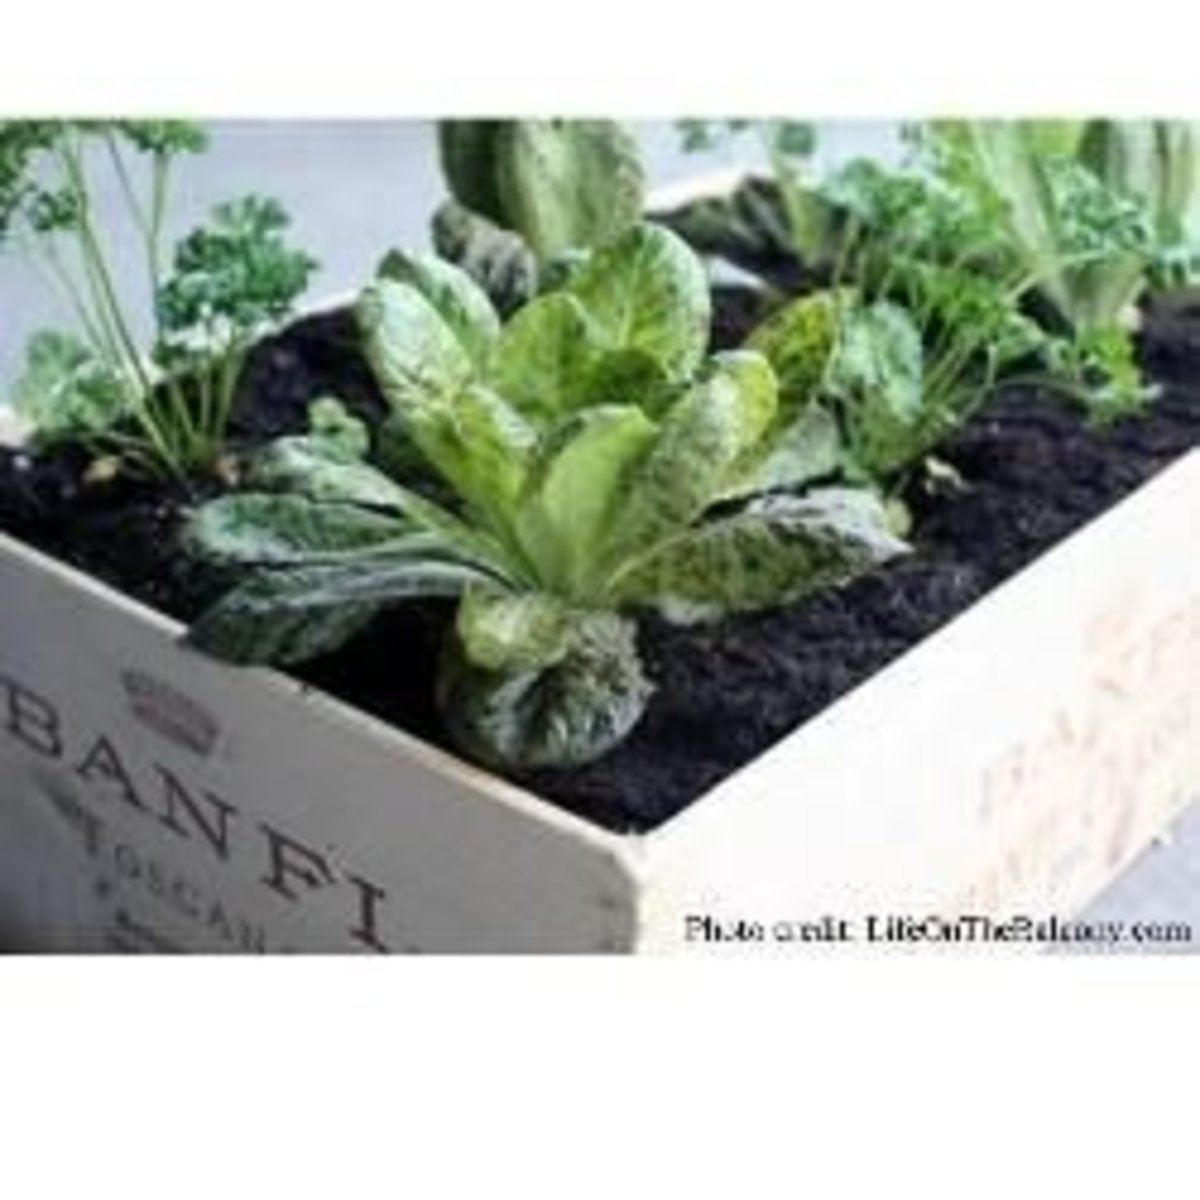 Dress Up Your Garden With a Wine Crate Herb Box